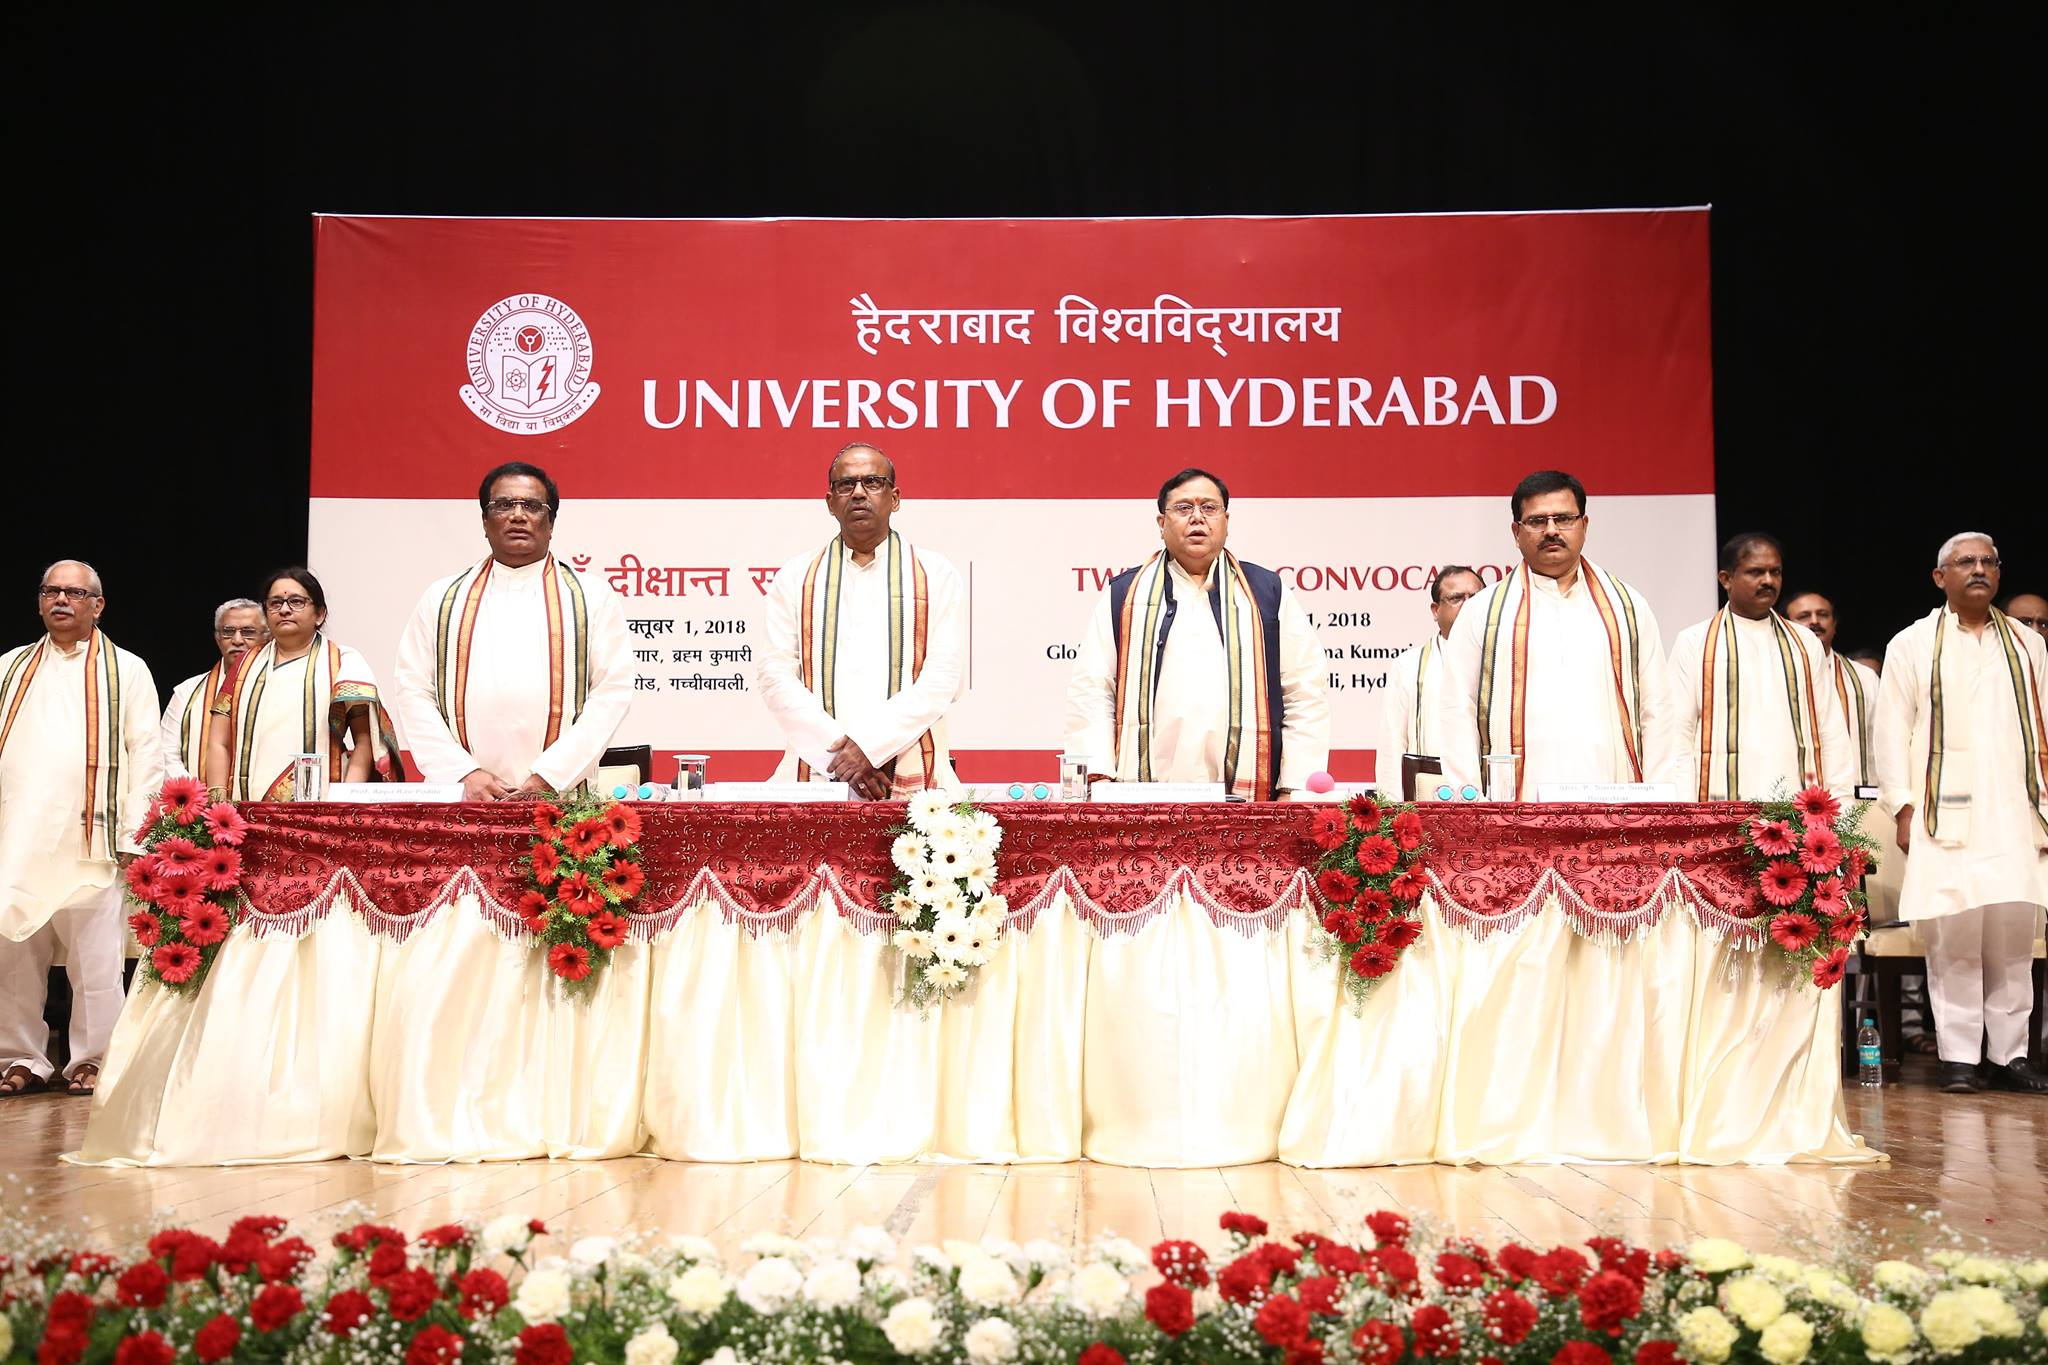 University of Hyderabad invites applications for PhD Admission January 2019 for more than 100 seats